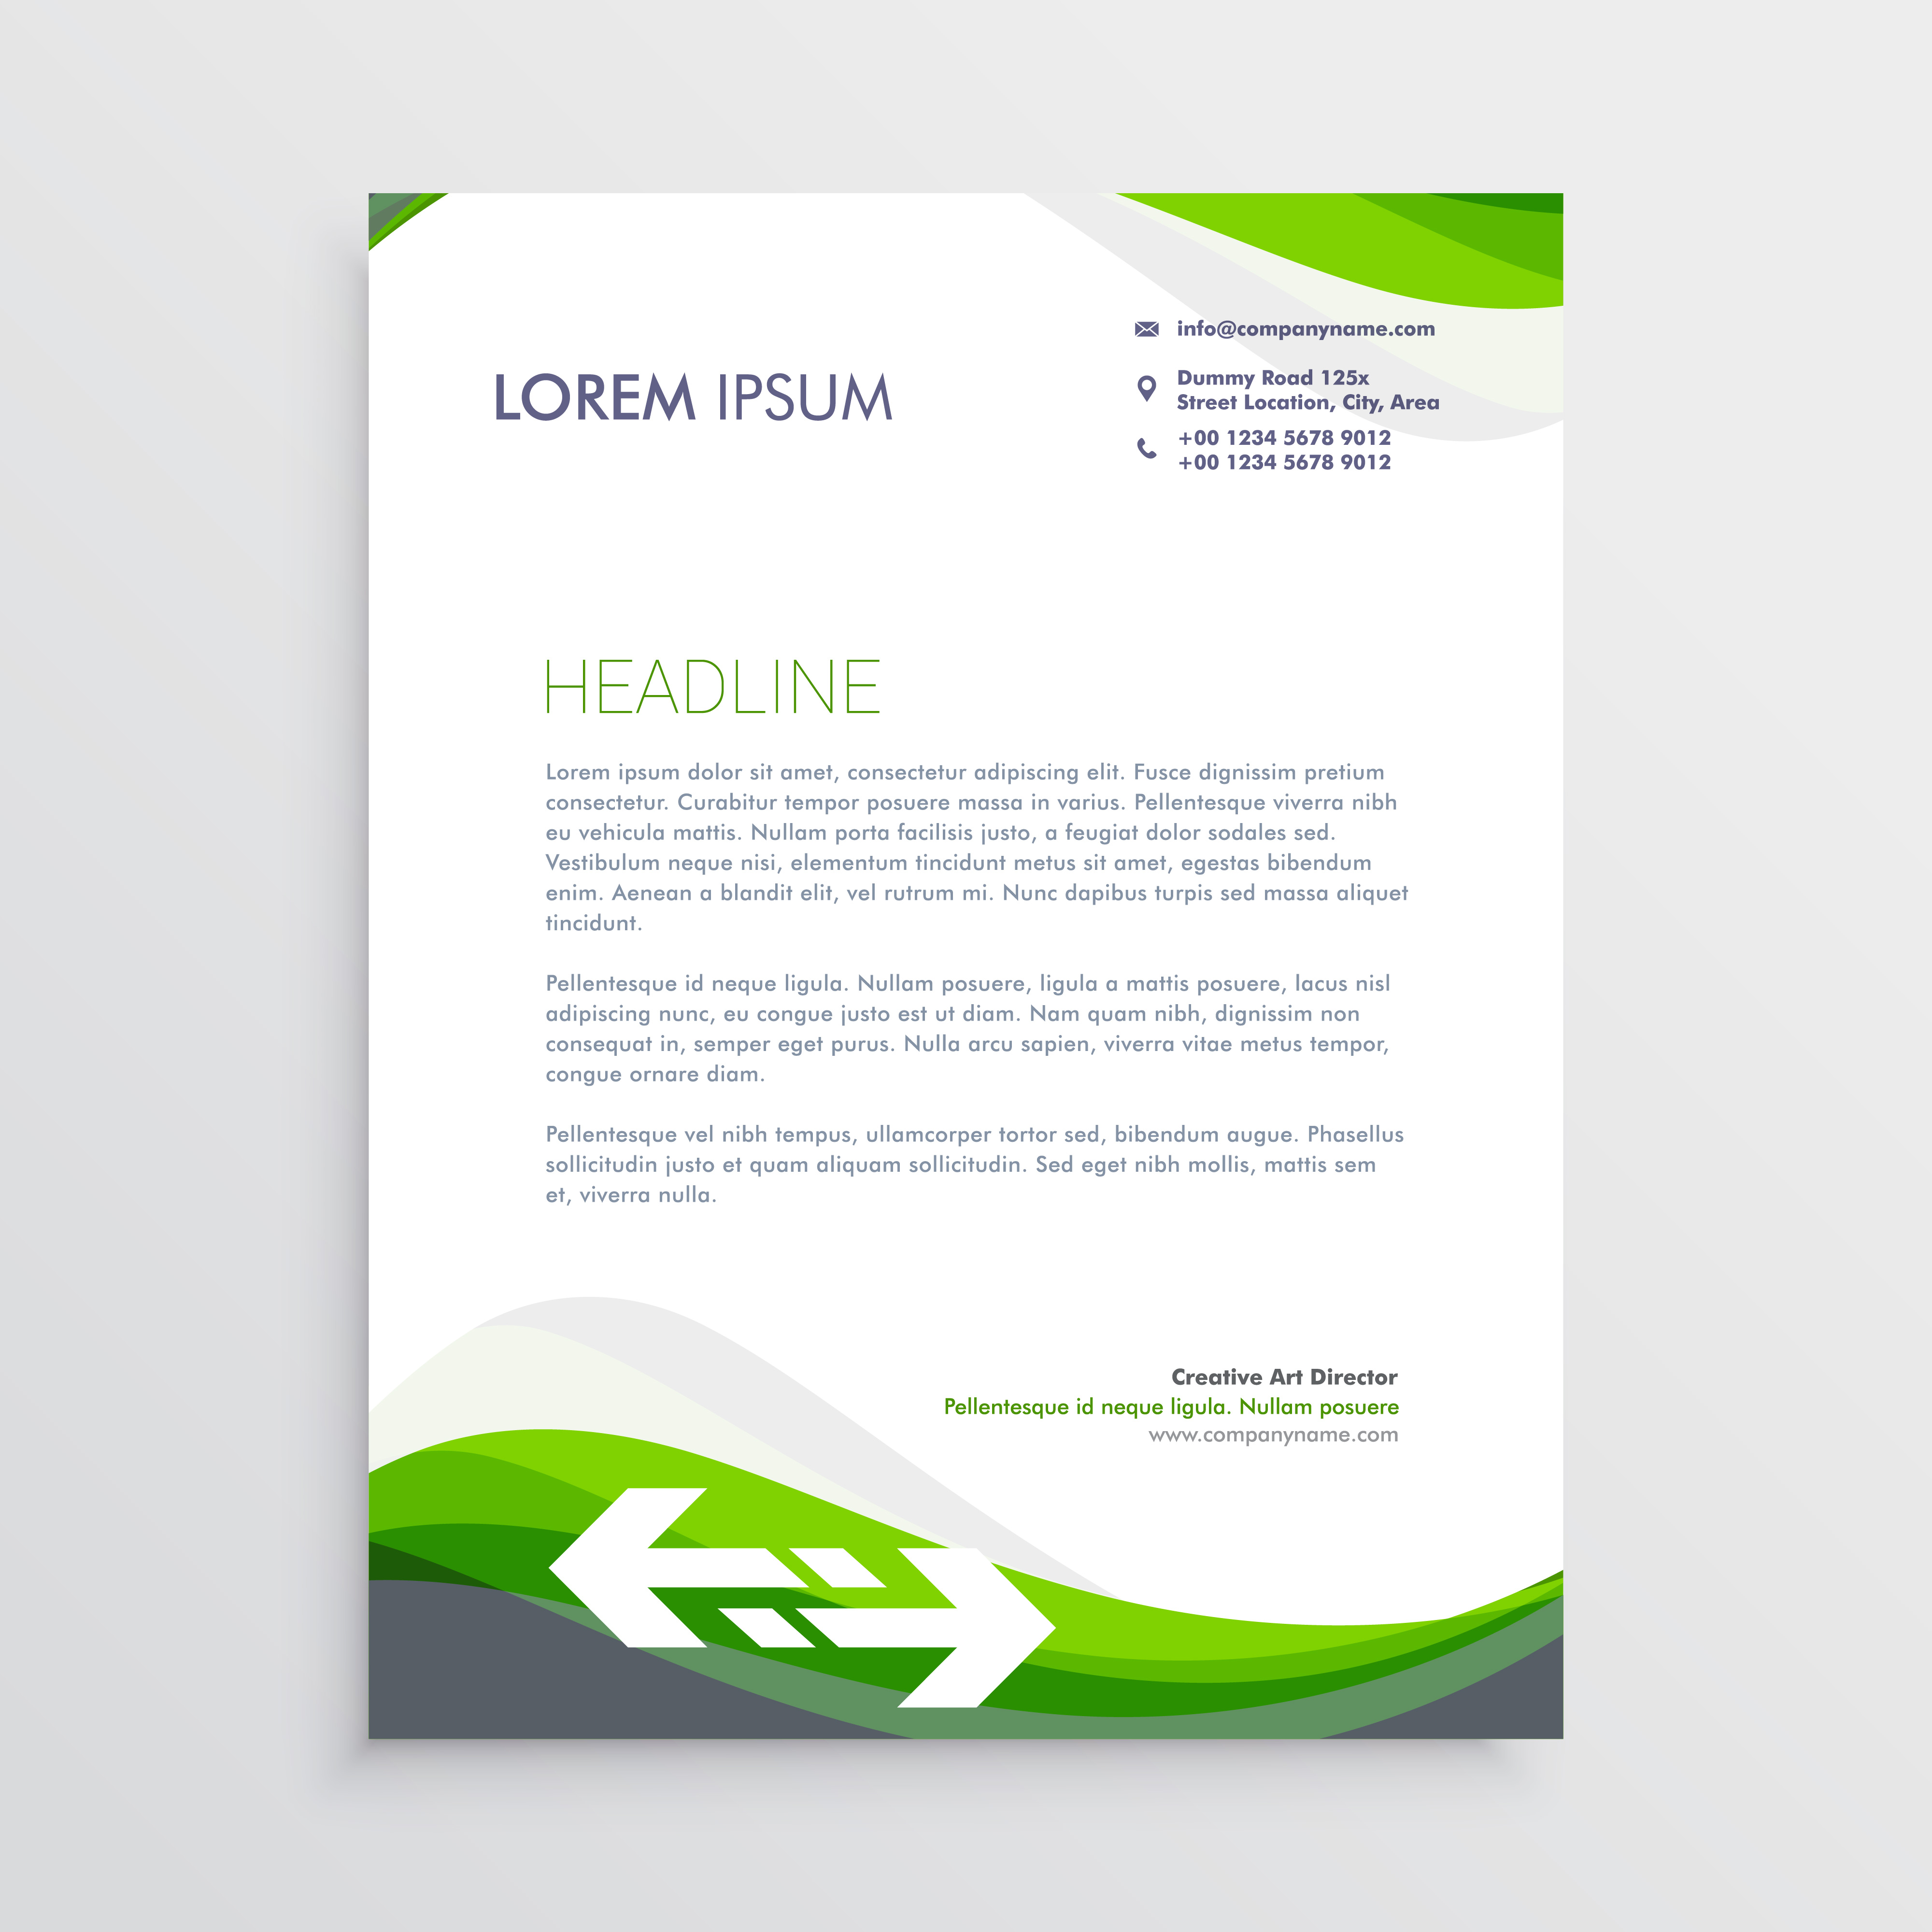 Business Cards And Letterheads Google Search: Elegant Green And Gray Letterhead Design Template